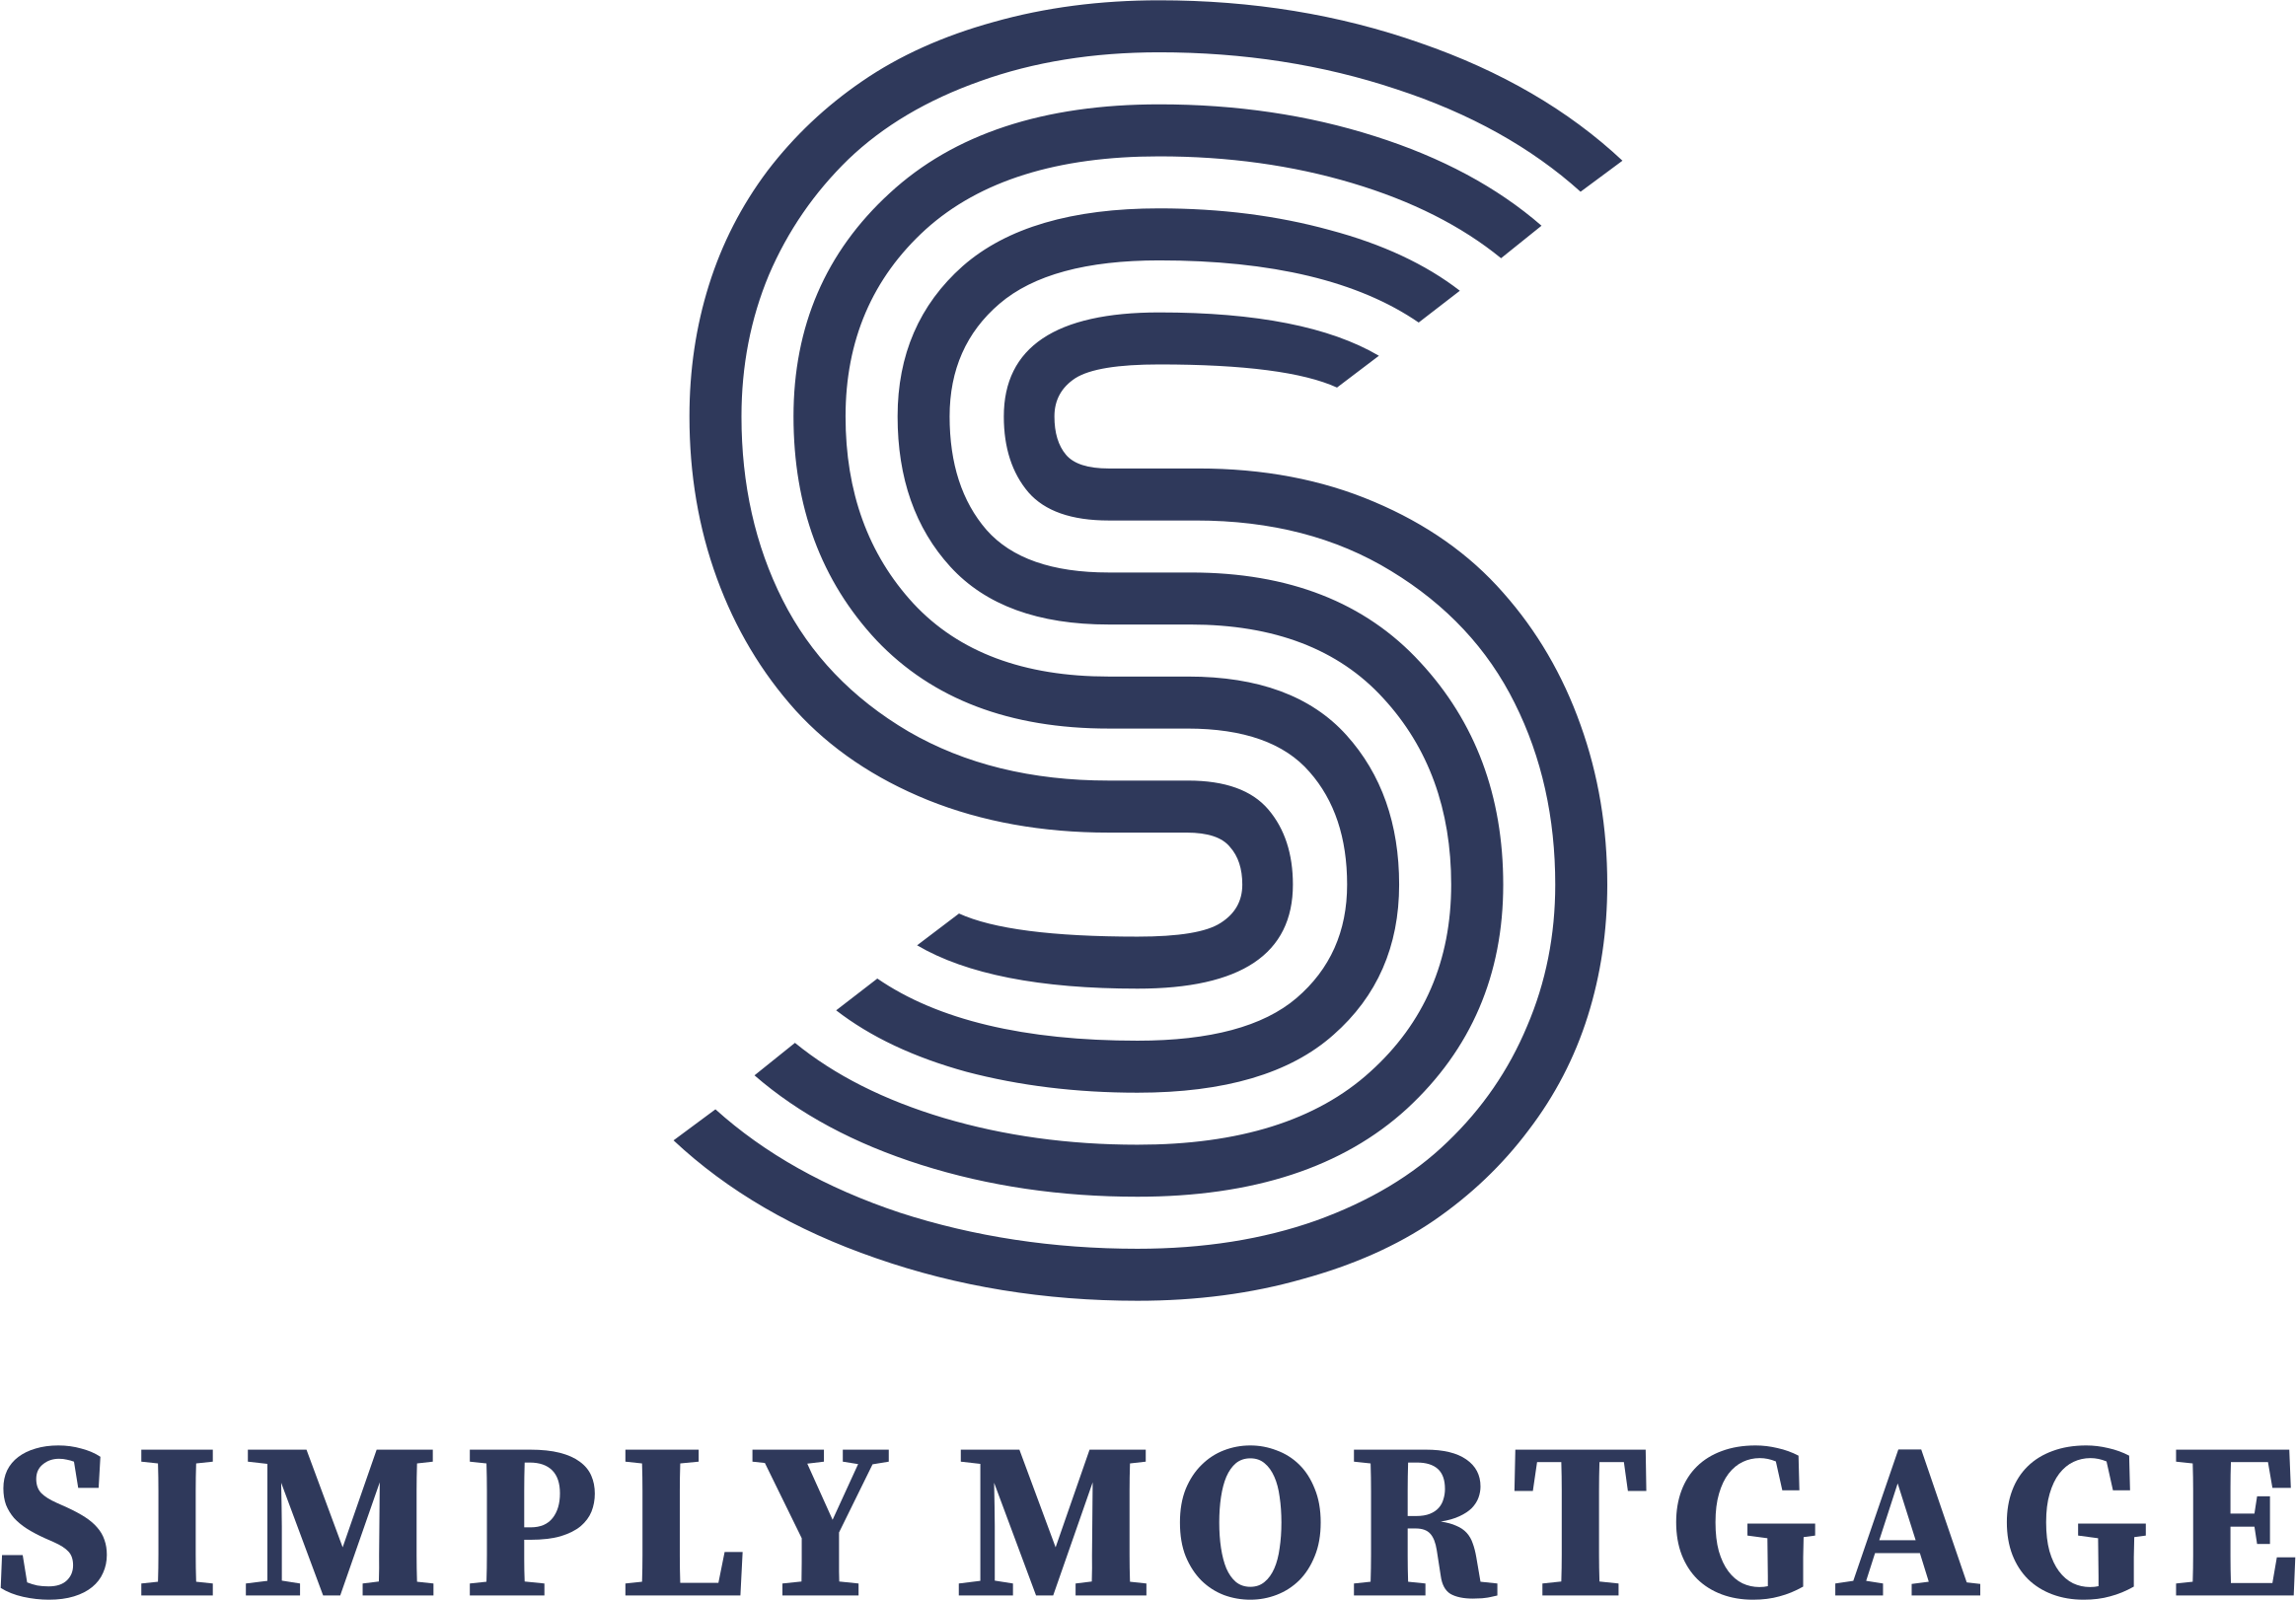 Simply Mortgage